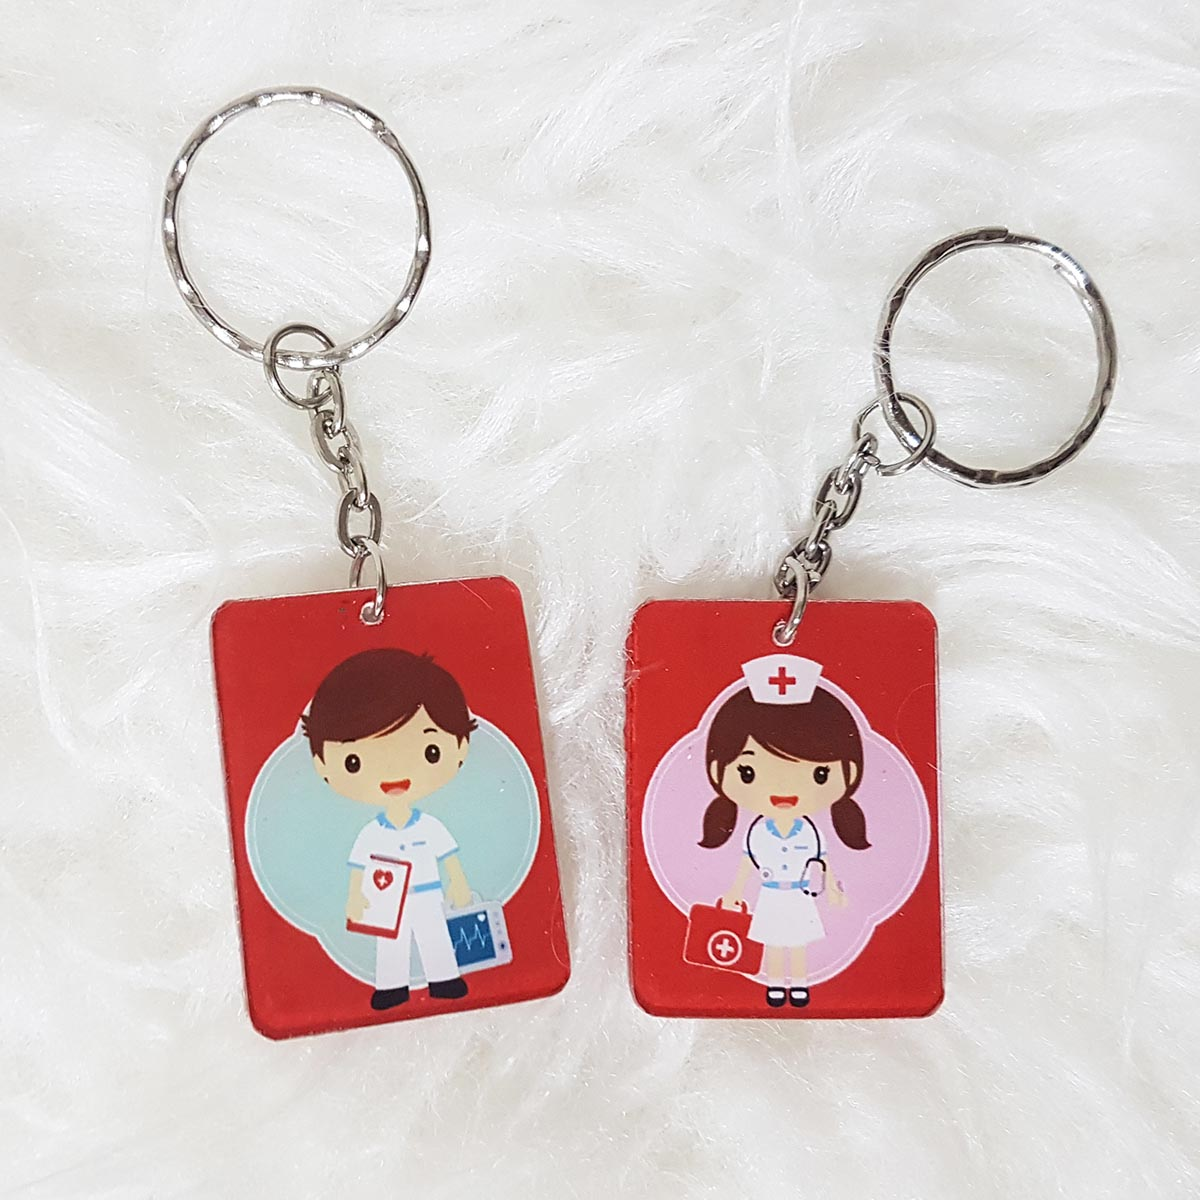 Customized Party Favours - Rectangle Acrylic Keychain Double Sided